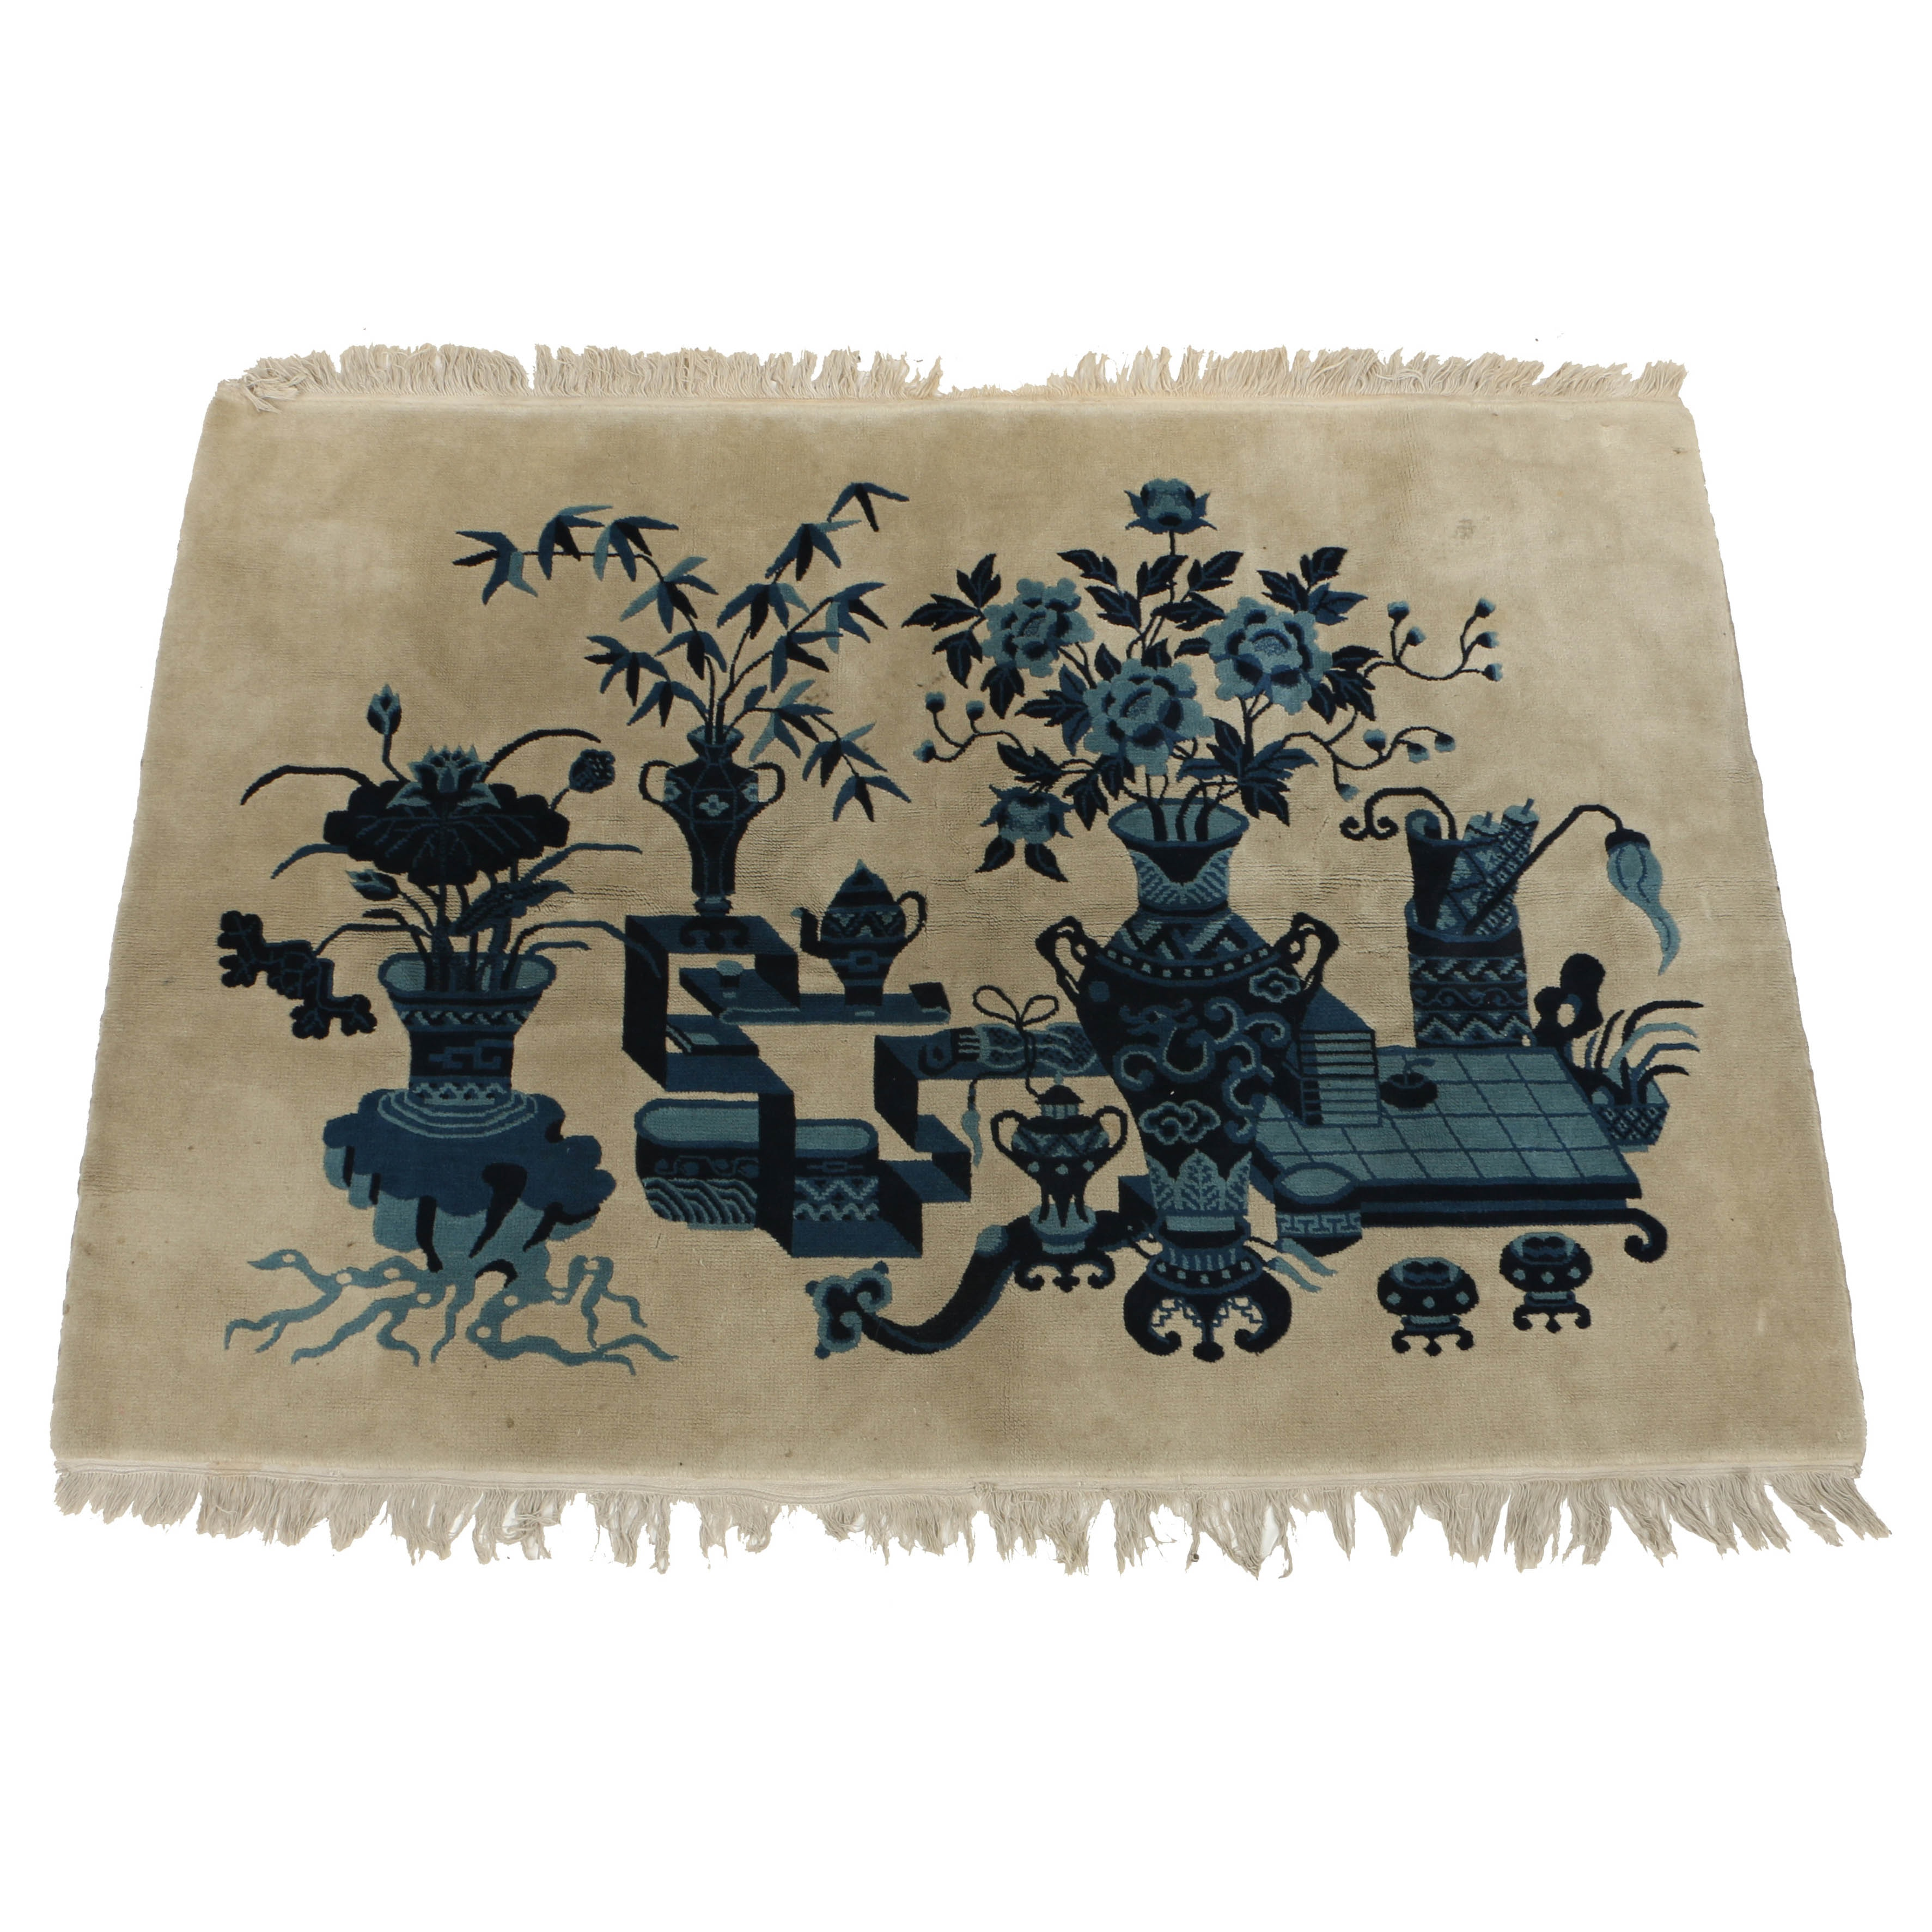 Circa 1920 Chinese Art Deco Hand-Knotted Wool Rug